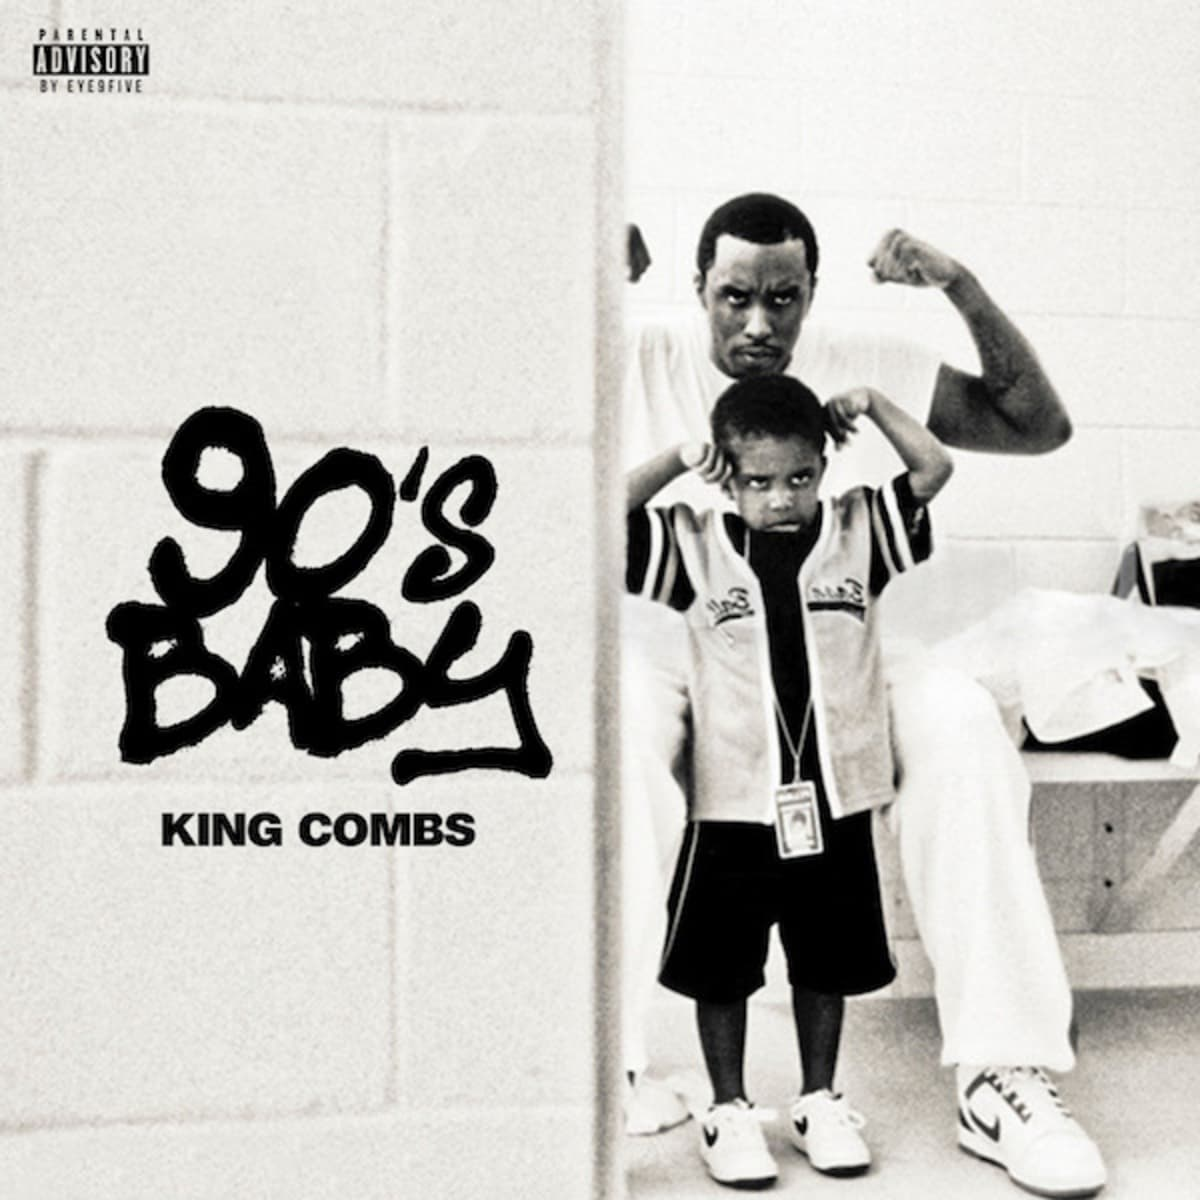 RT @ComplexMusic: ???????? @Diddy's son @KingCombs drops debut mixtape '90's Baby.'  https://t.co/y9wxKJnSXC https://t.co/2ml5hn9pY0